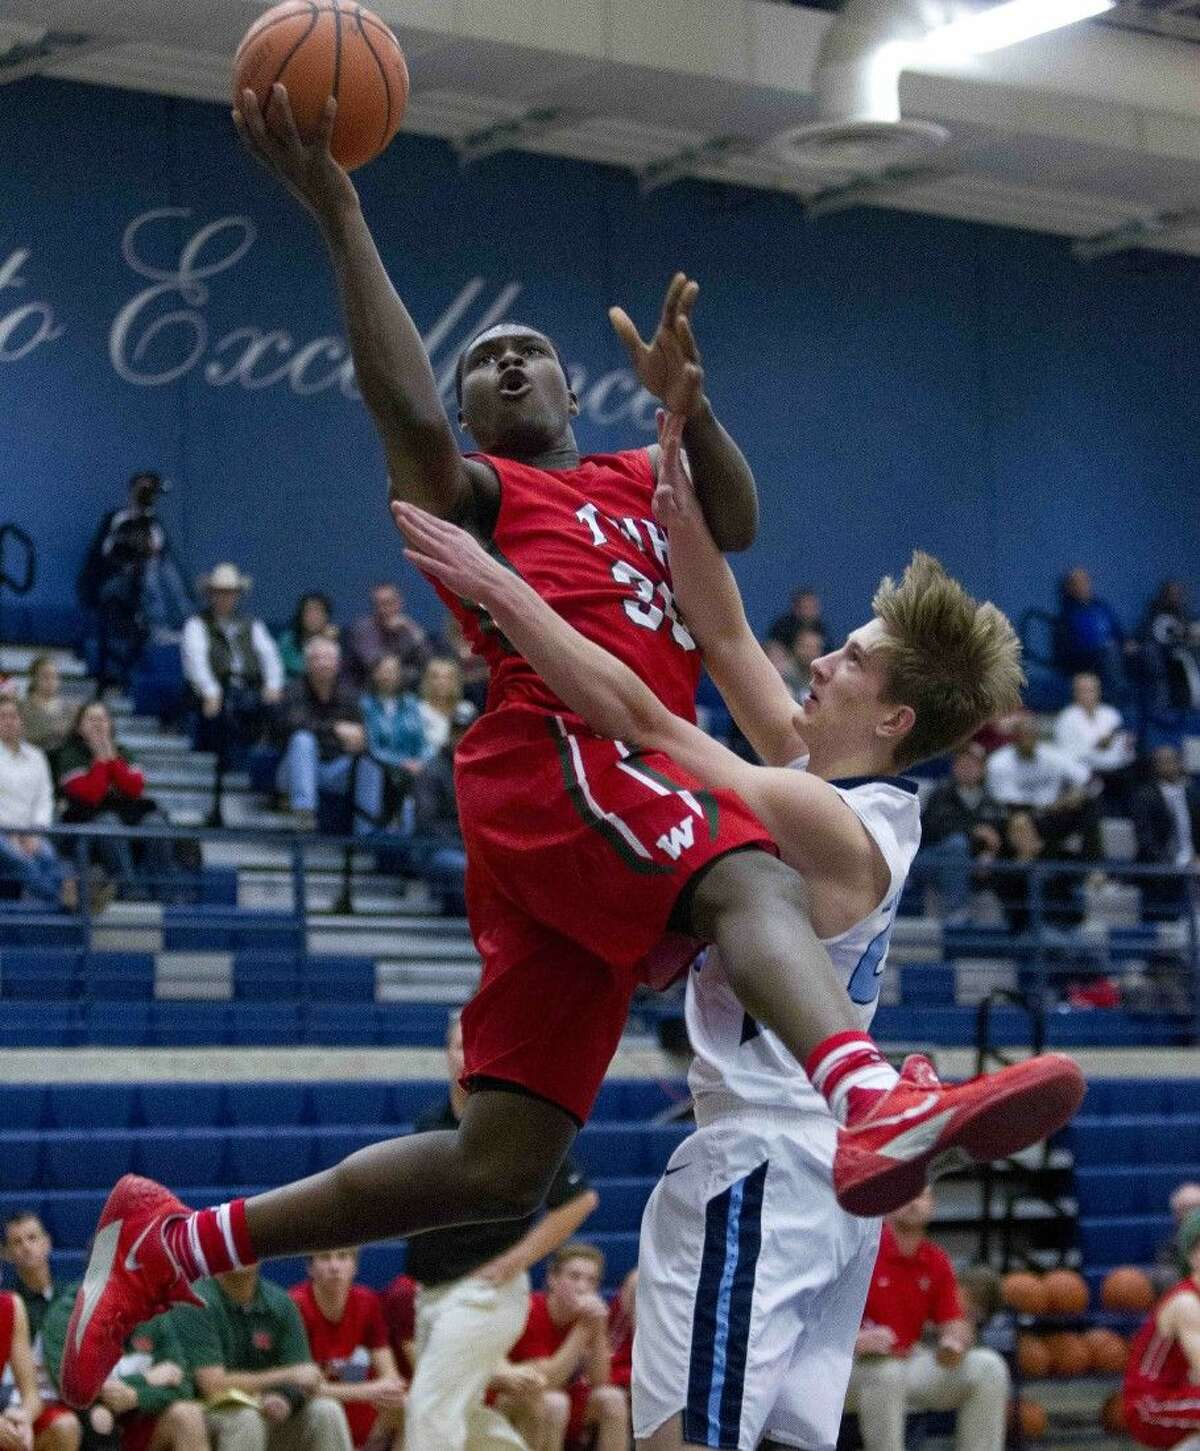 The Woodlands sophomore Romeo Wilbert is The Courier's All-County Player of the Year